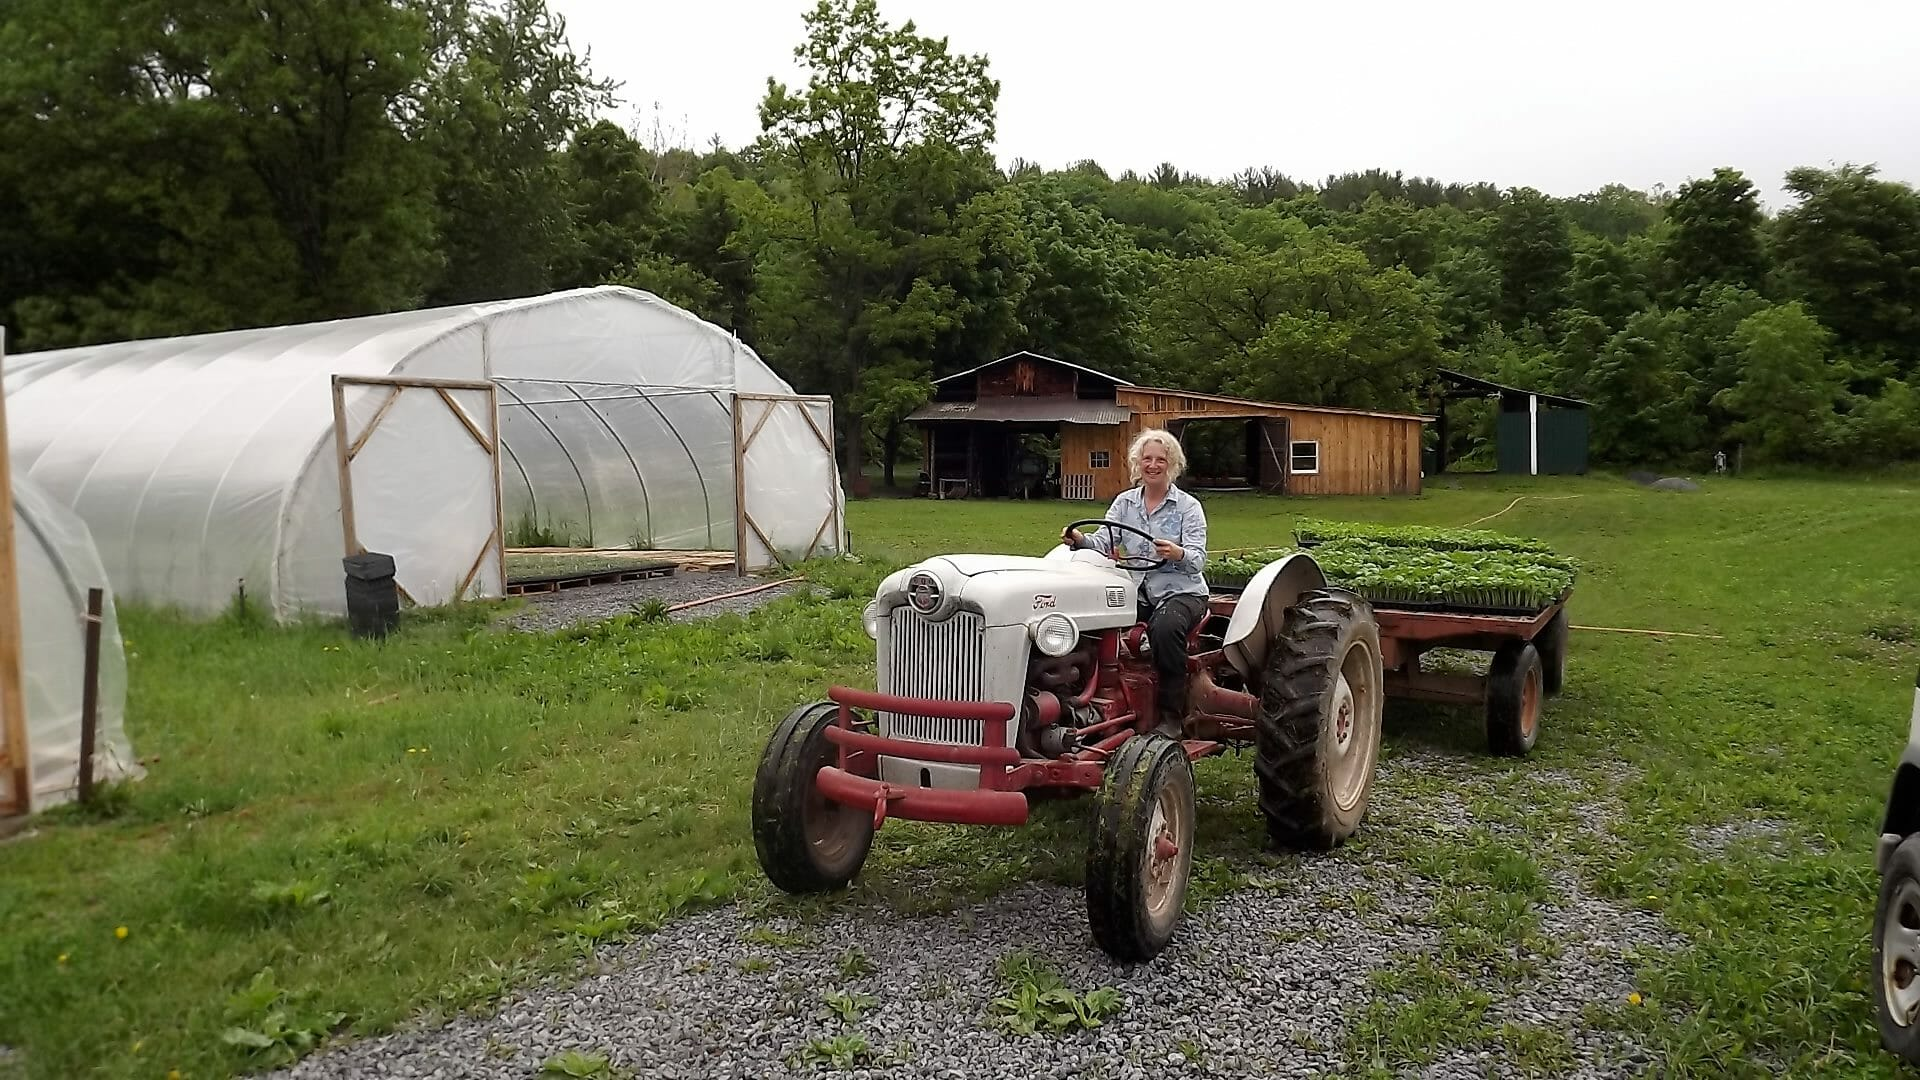 Deb Kavakos, of Stoneledge Farm in New York, was an early adopter of the CSA model in the U.S. / Courtesy Stoneledge Farm